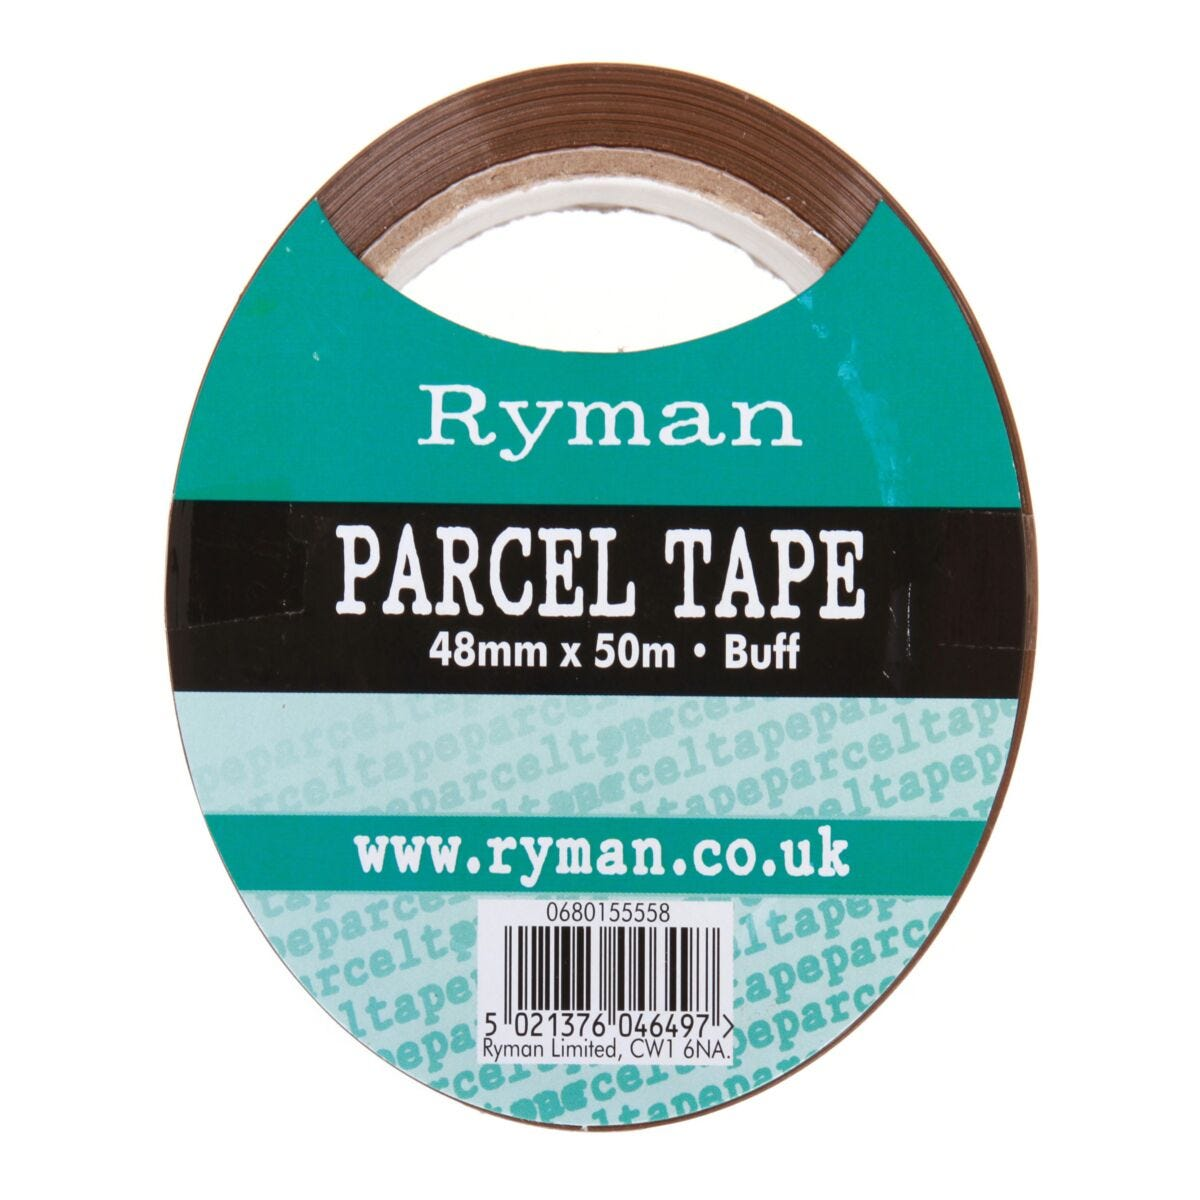 Ryman Parcel Tape 48mmx50m Pack of 6 Buff